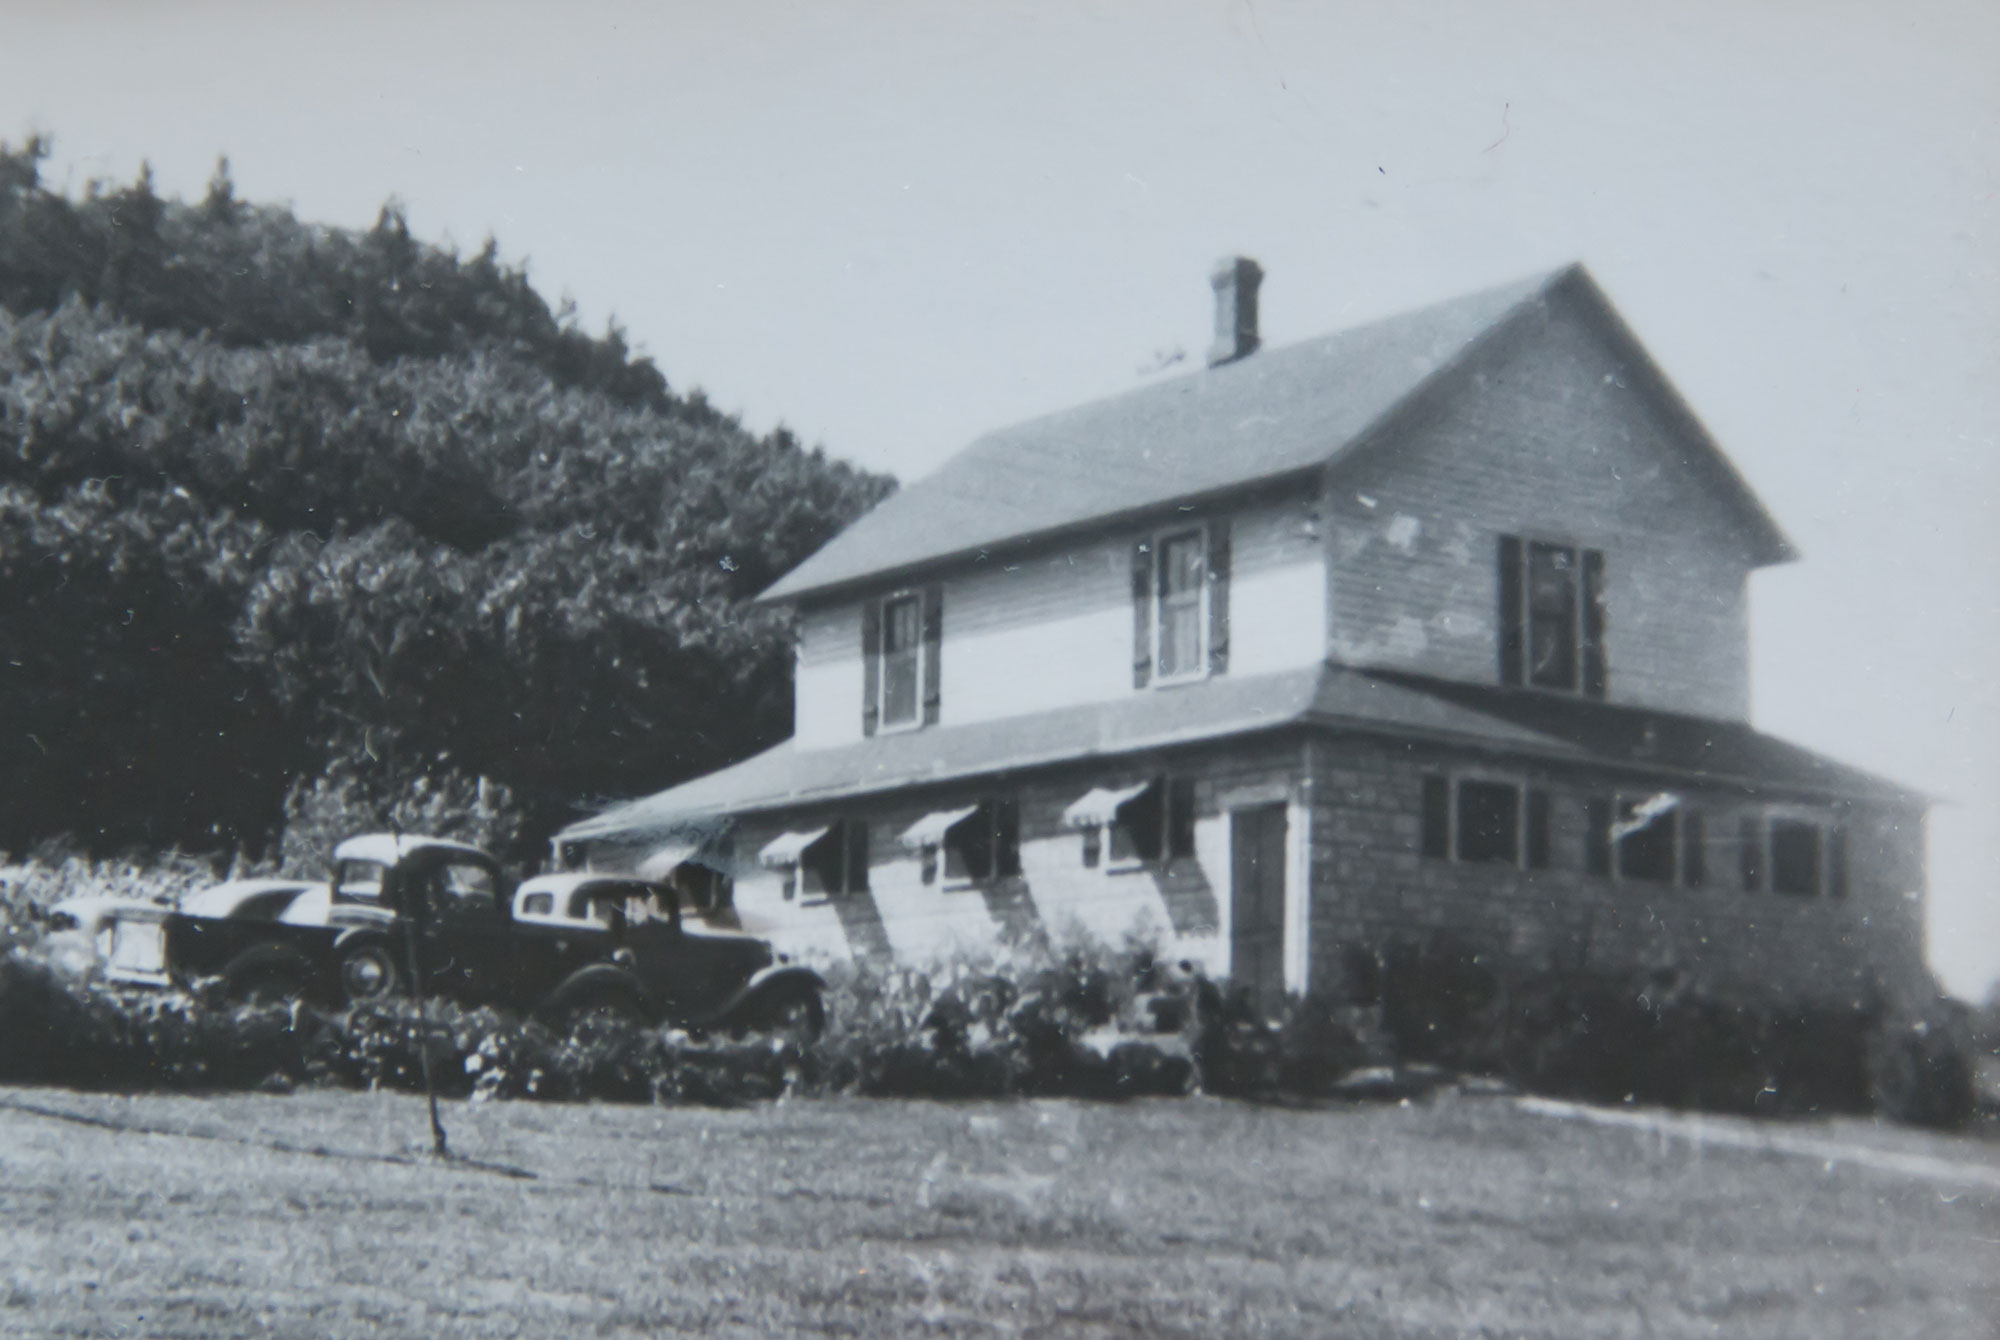 Historic Castle Hill Supper Club - restaurant and banquet facility